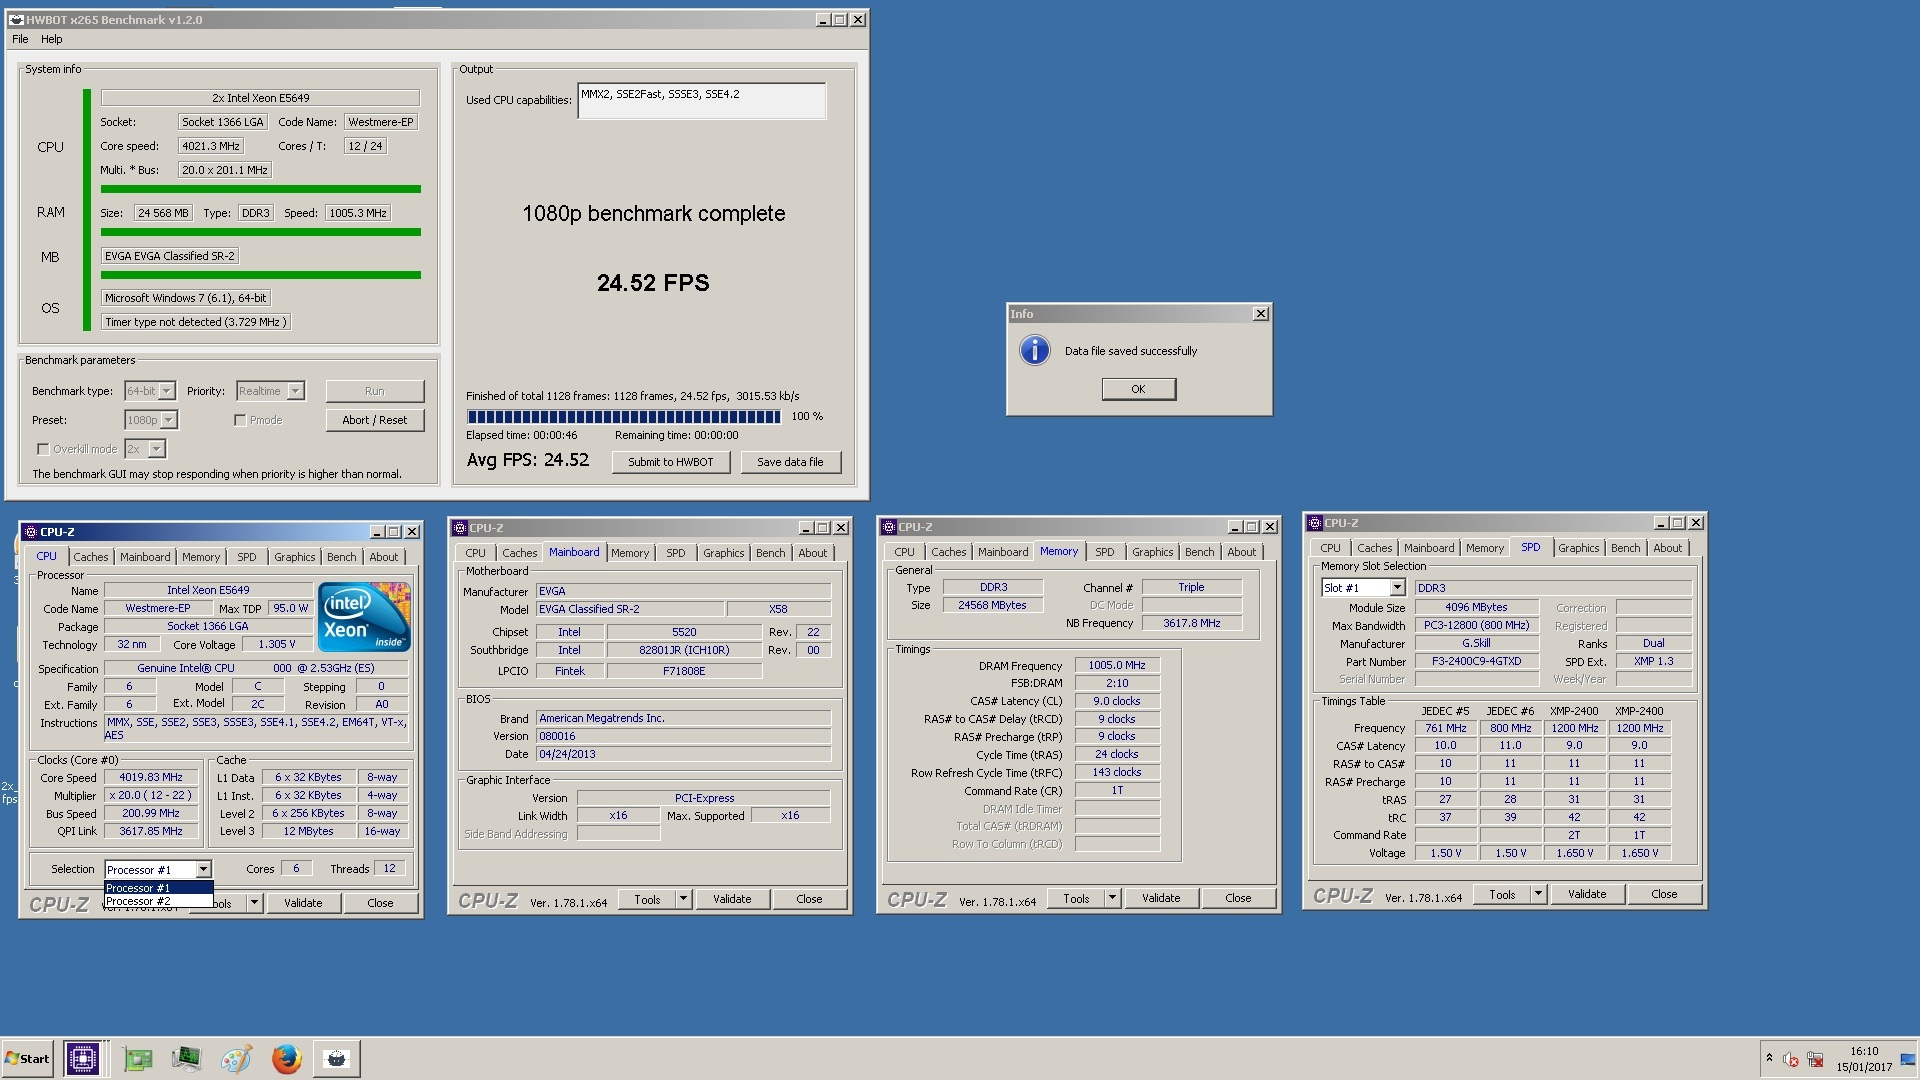 pilu`s HWBOT x265 Benchmark - 1080p score: 24 52 fps with a Xeon E5649